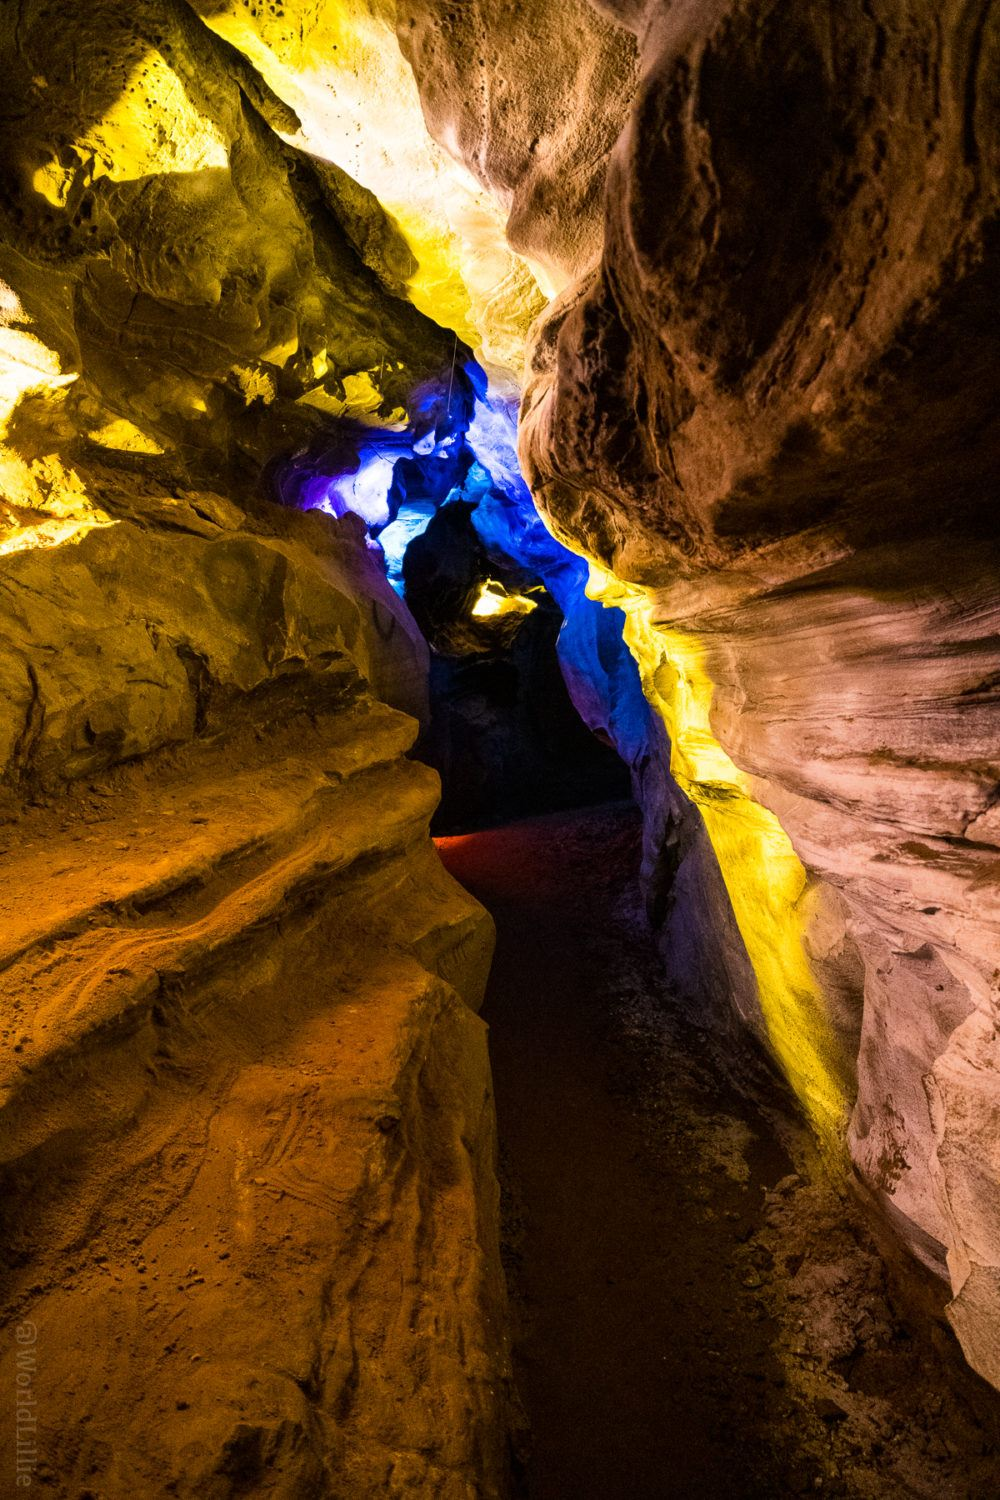 Could you fit through this cavern?